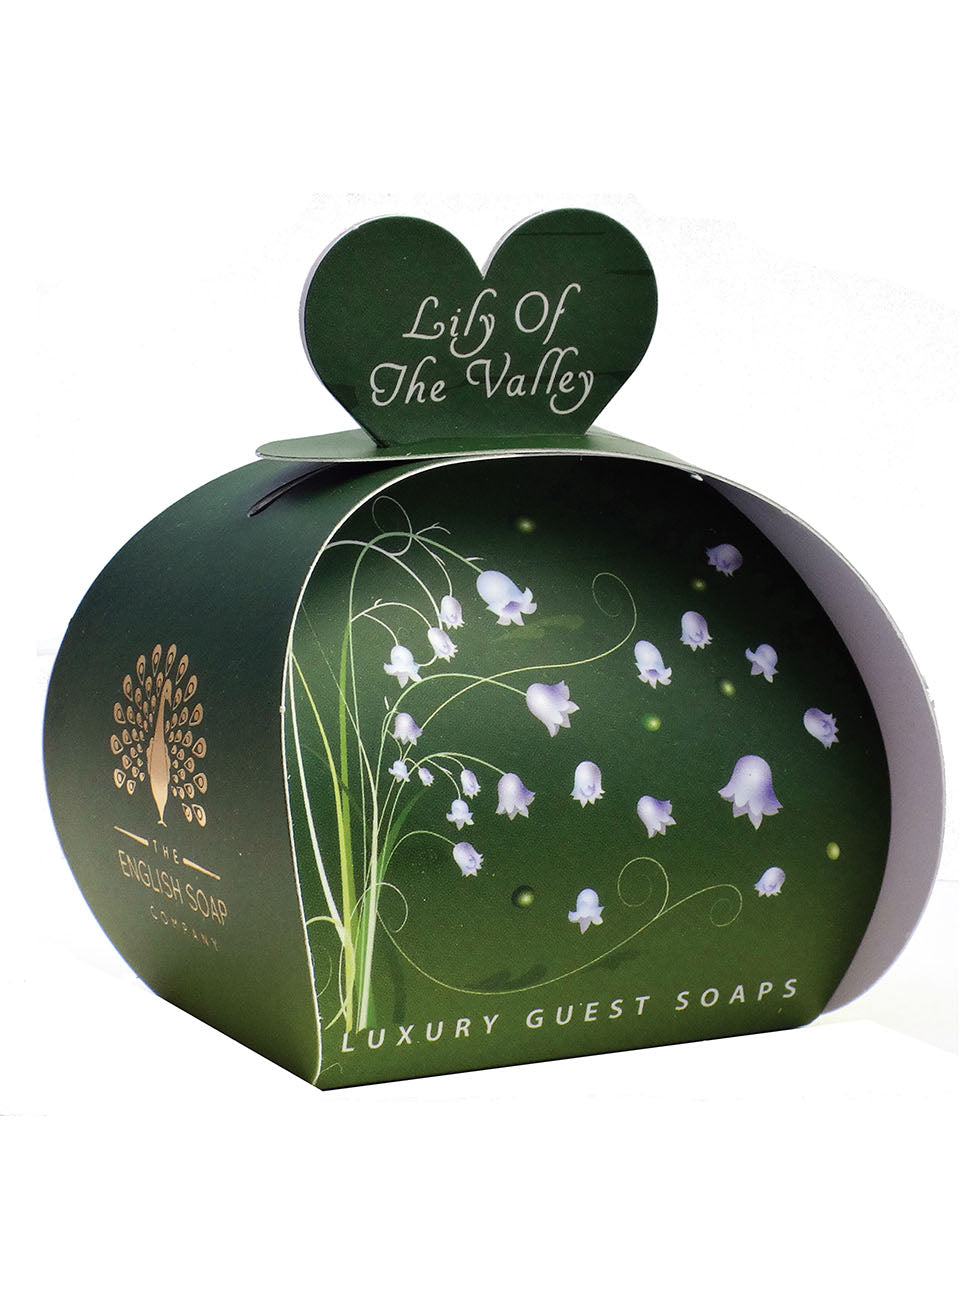 English Soap Company Luxury Guest Soaps - Lily of the Valley